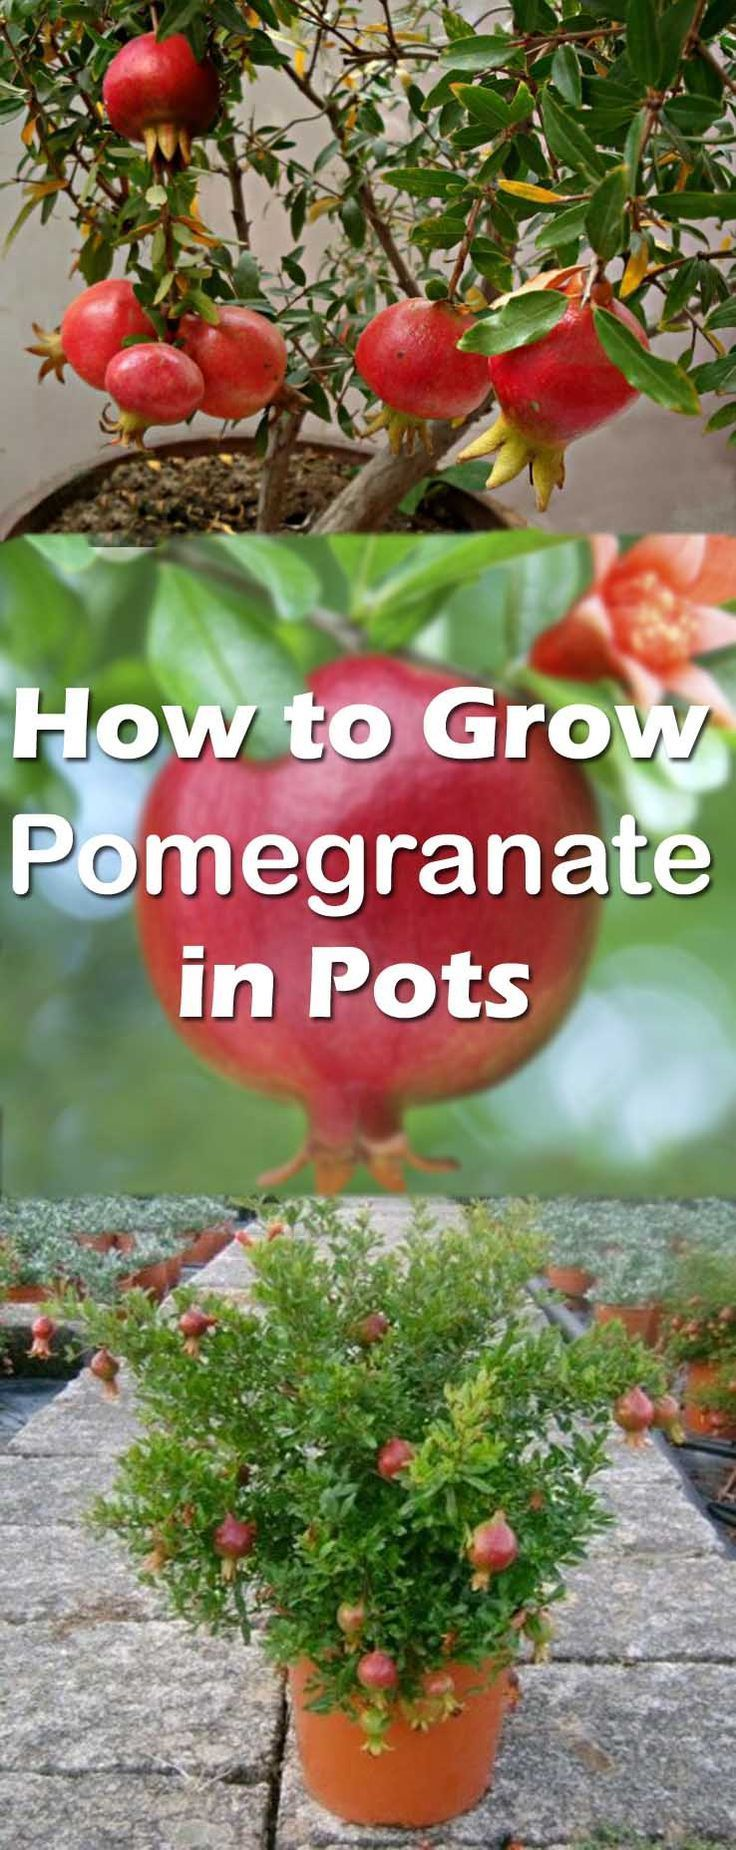 Pomegranate is one of the nicest fruit trees and perhaps the easiest to grow in pots because it has shallow root system when compared to other fruit trees. Learn How to Grow Pomegranate in Pots